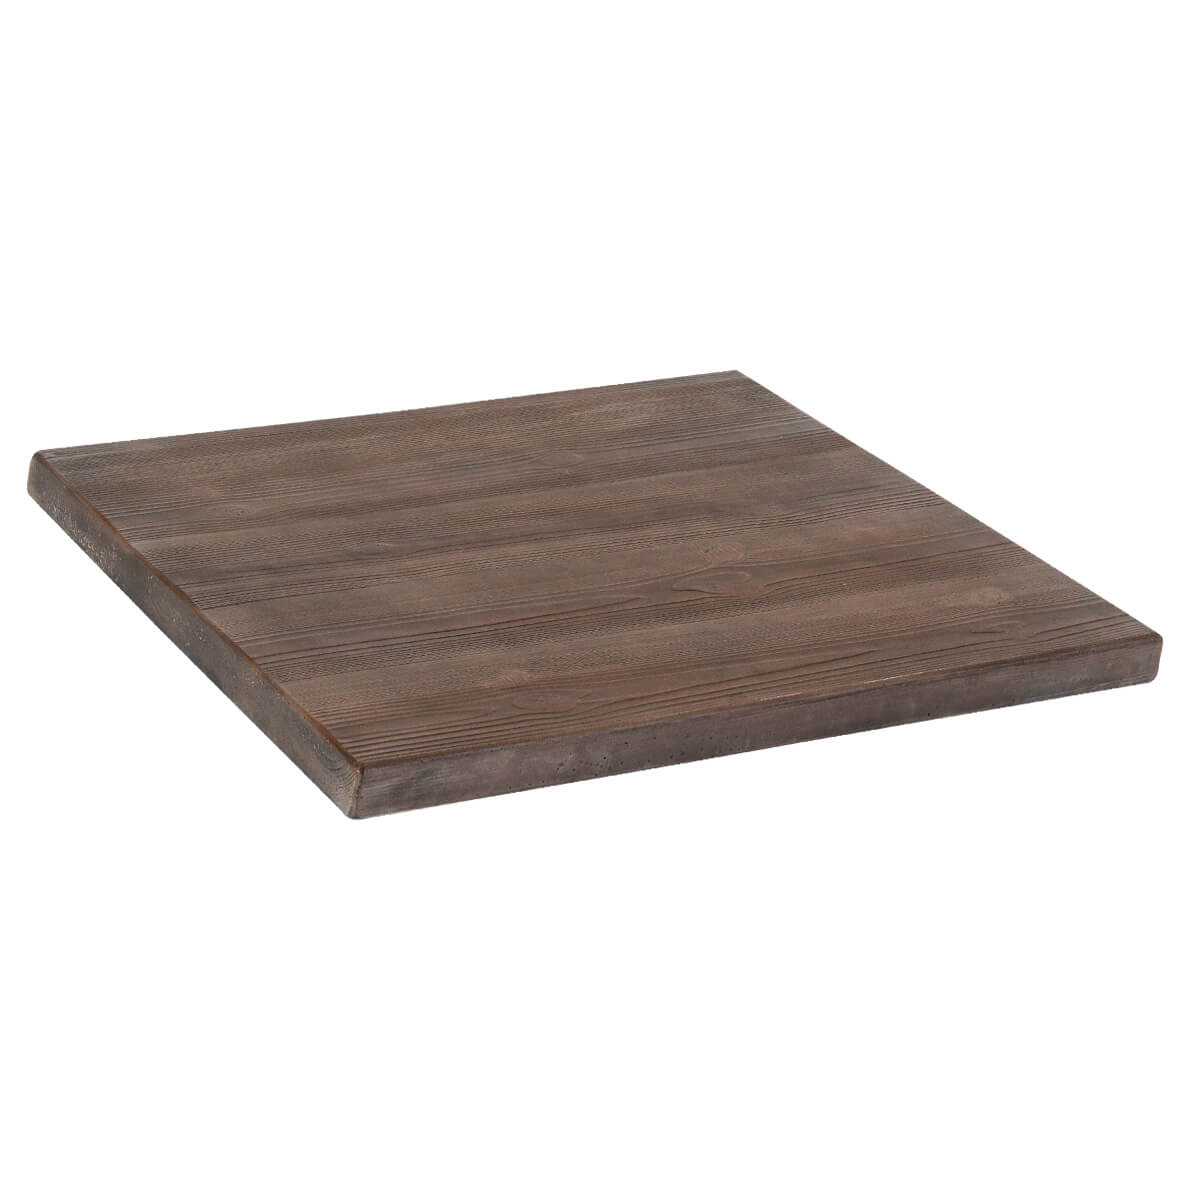 Outdoor Resin Table Top in Dark Walnut Finish